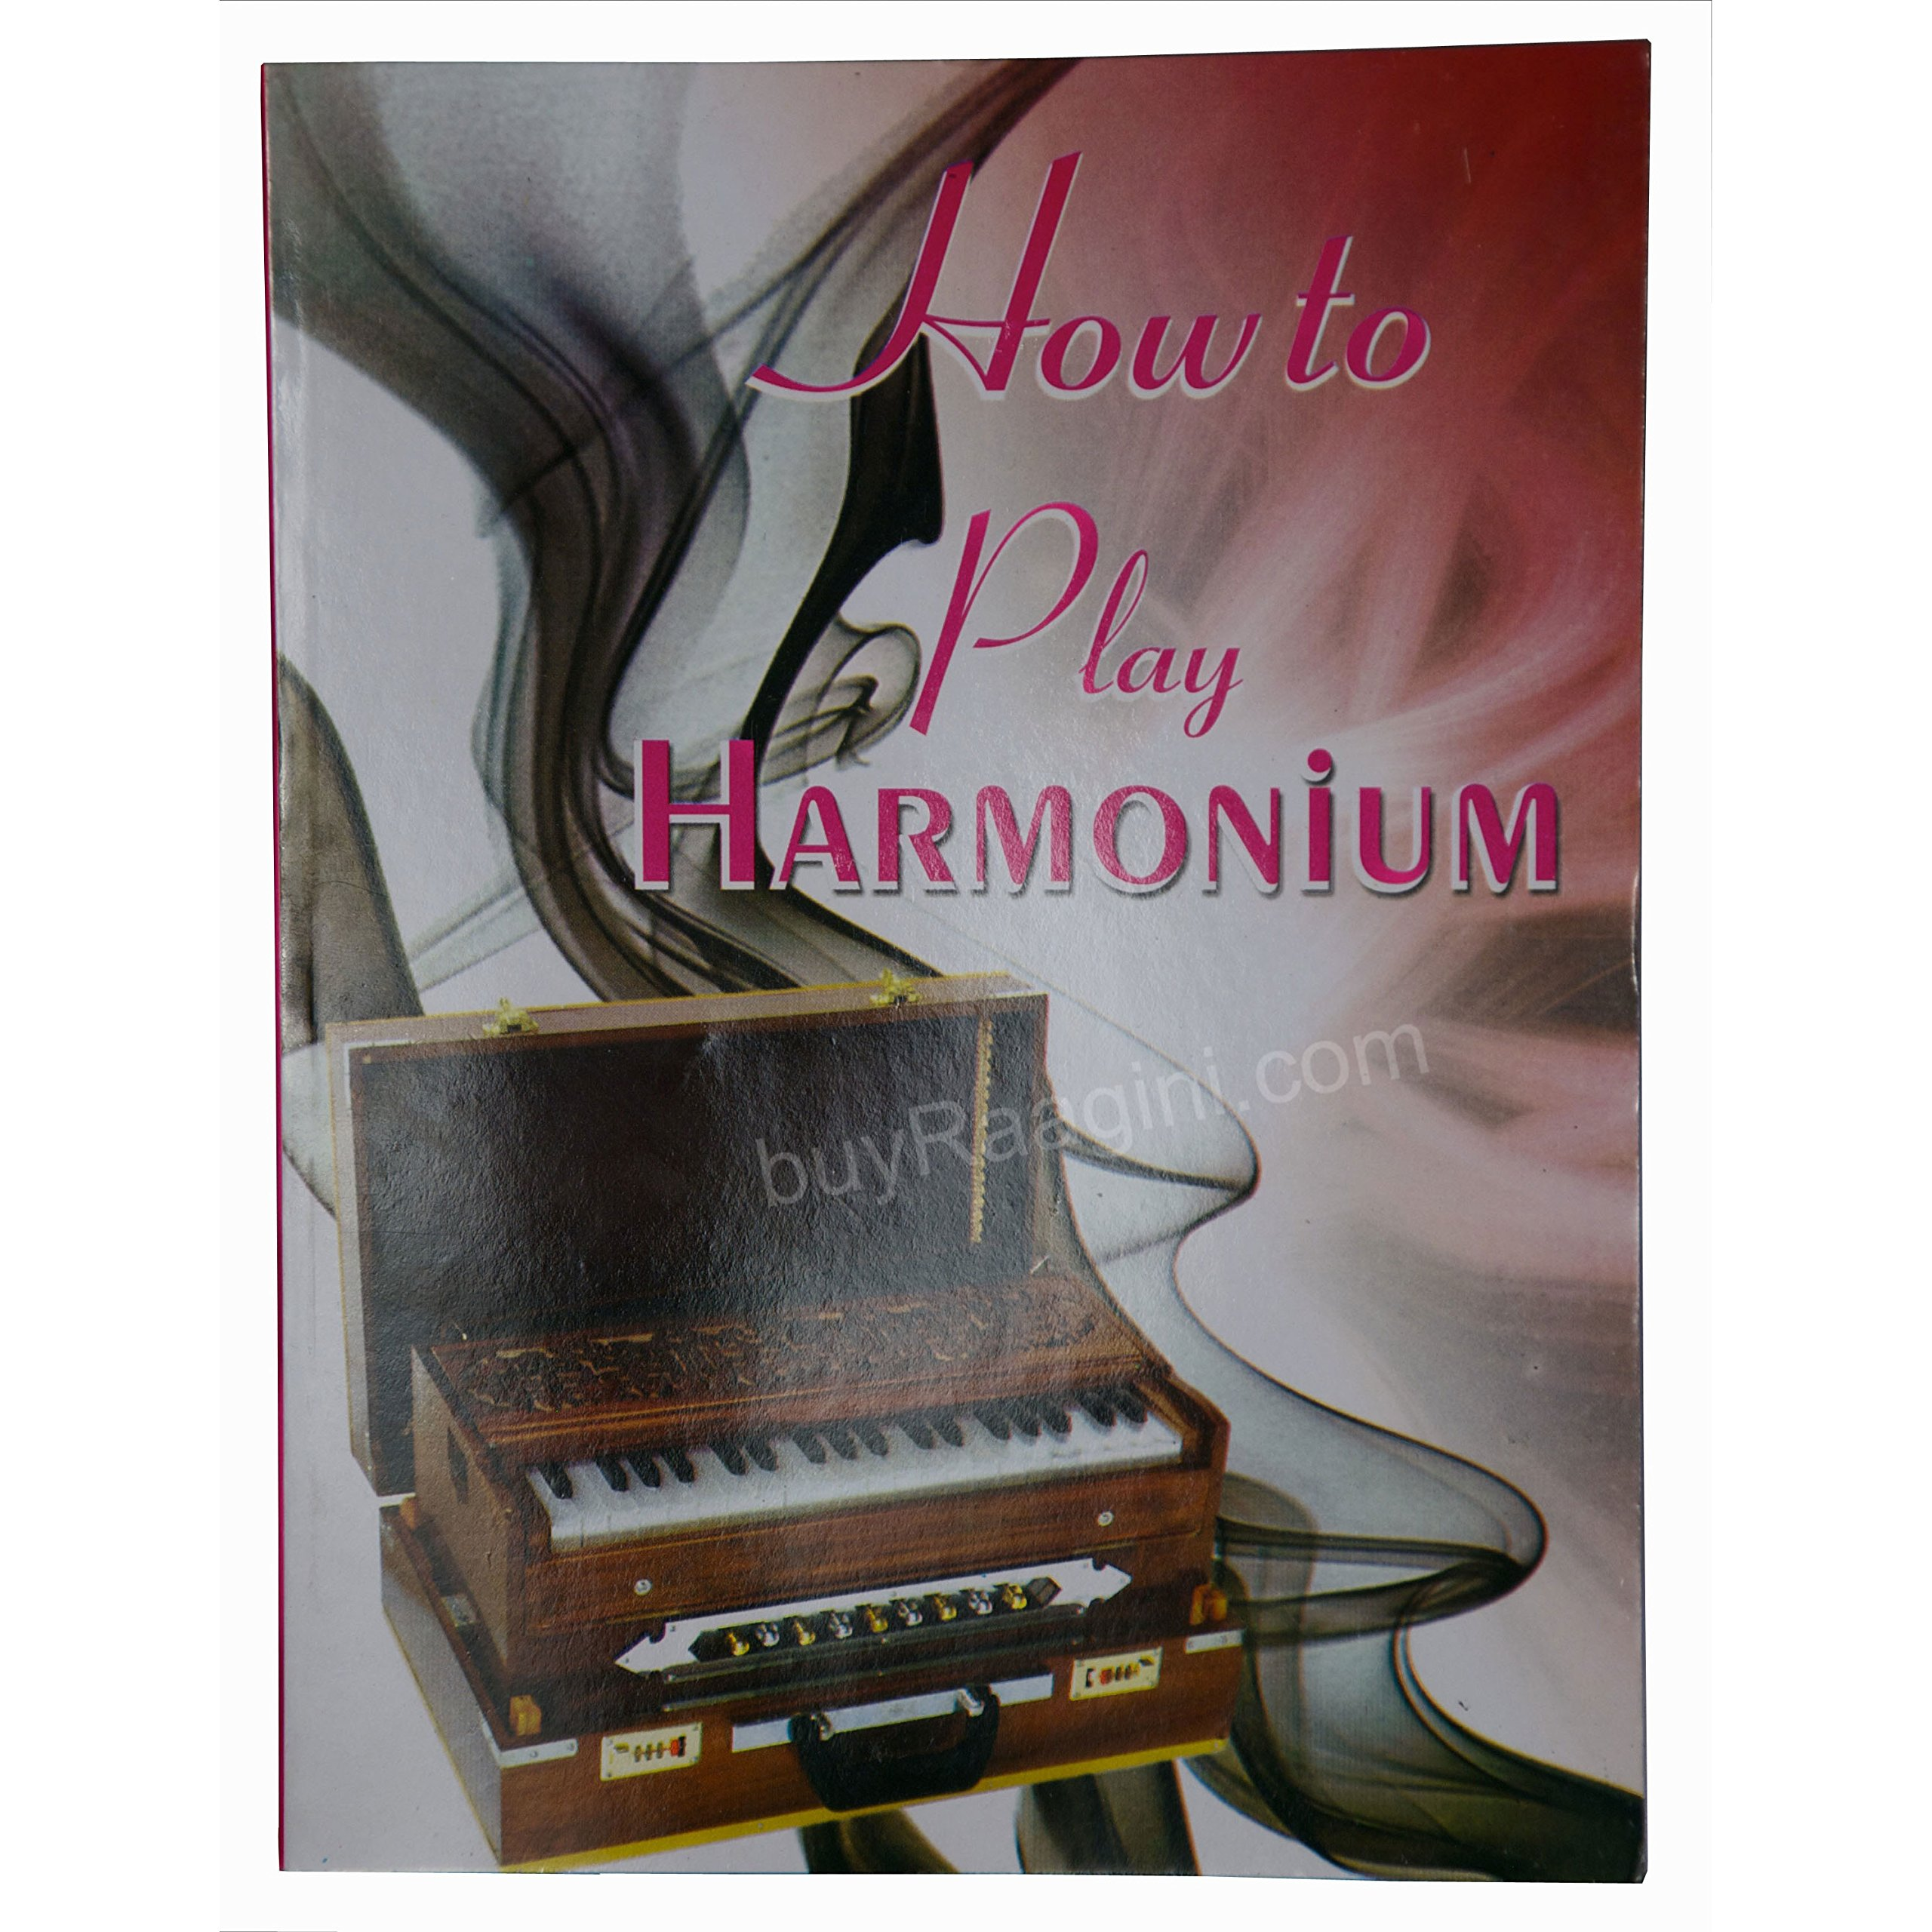 Harmonium Instrument, BINA No. 17B, In USA, Standard, 9 Stops, 3 1/2 Octaves, Rosewood Color, Tuned To A440, Coupler, Special Reeds, Bag, Book (PDI-AIG)